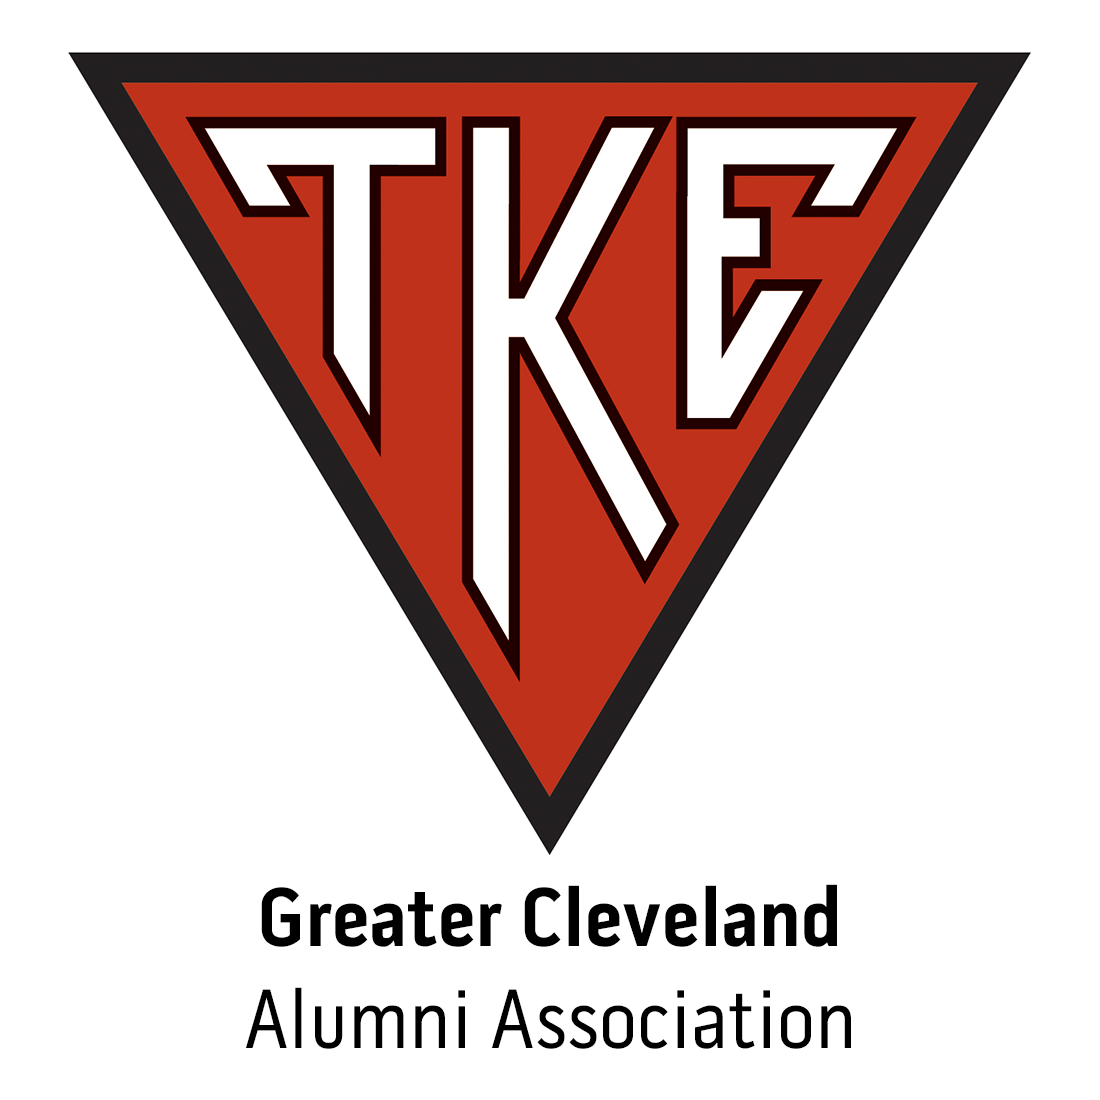 Greater Cleveland Alumni Association for Cleveland State University